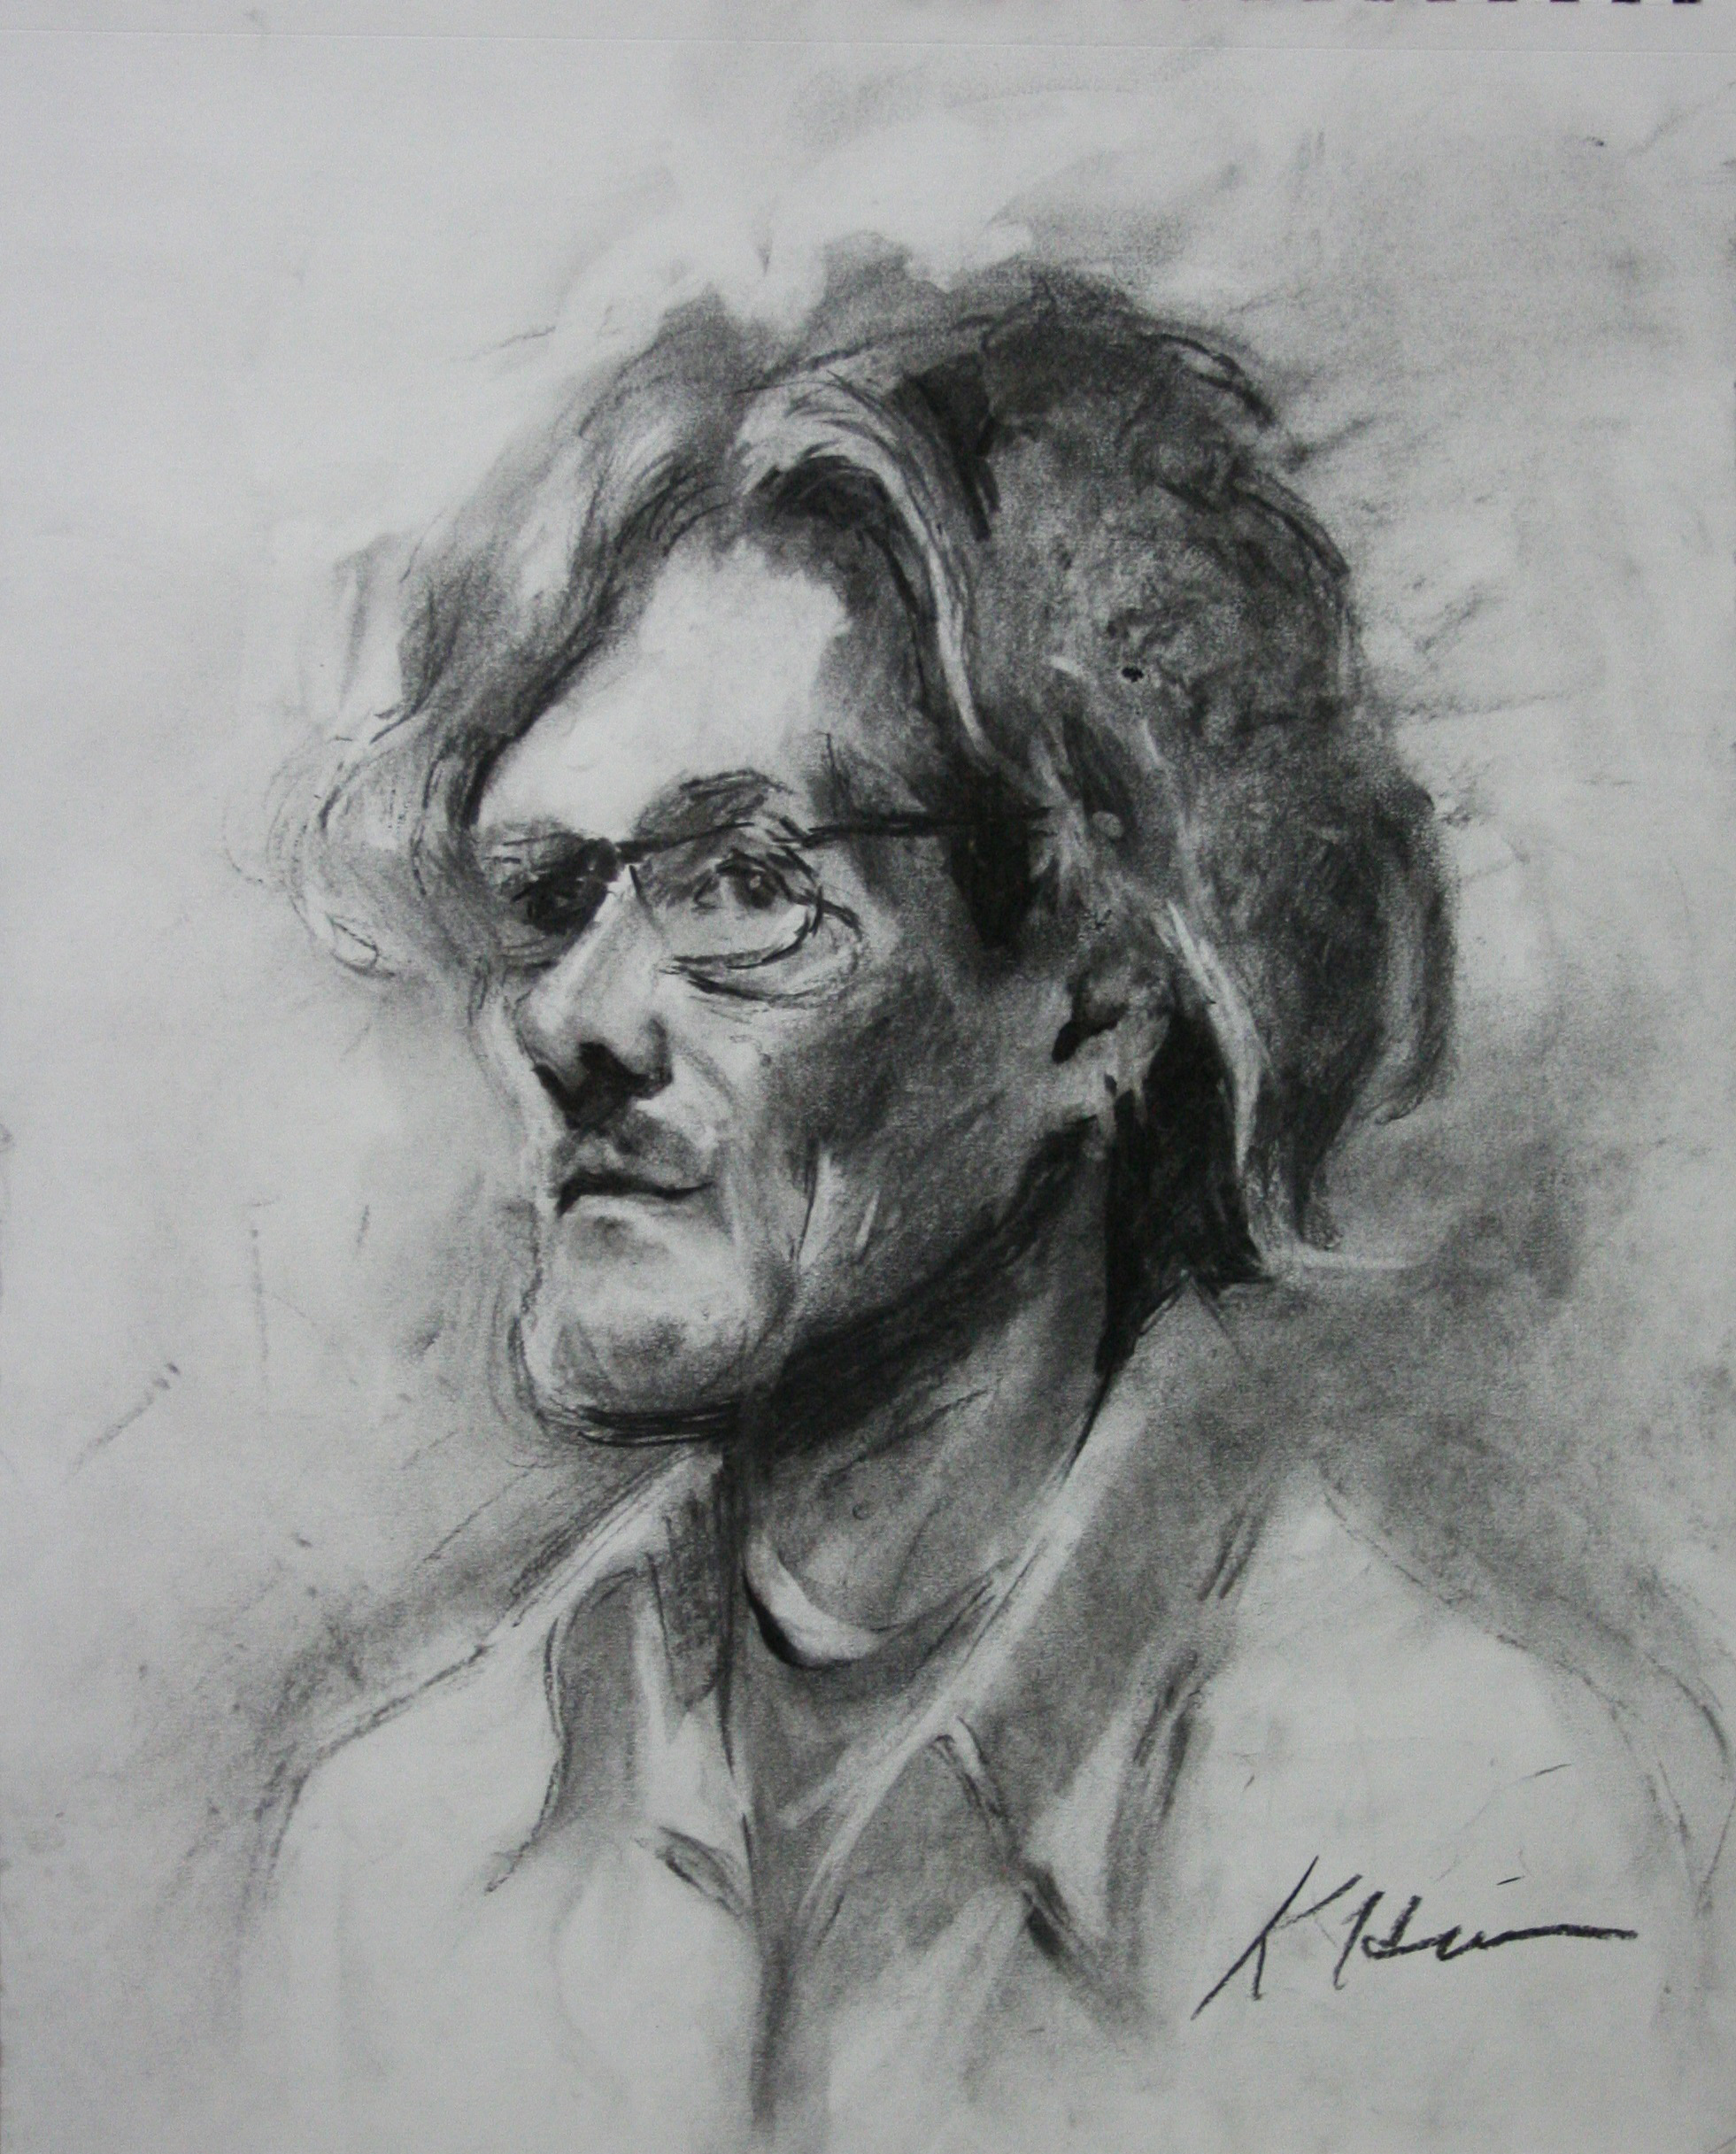 Kathryn Heim did this two hour drawing.